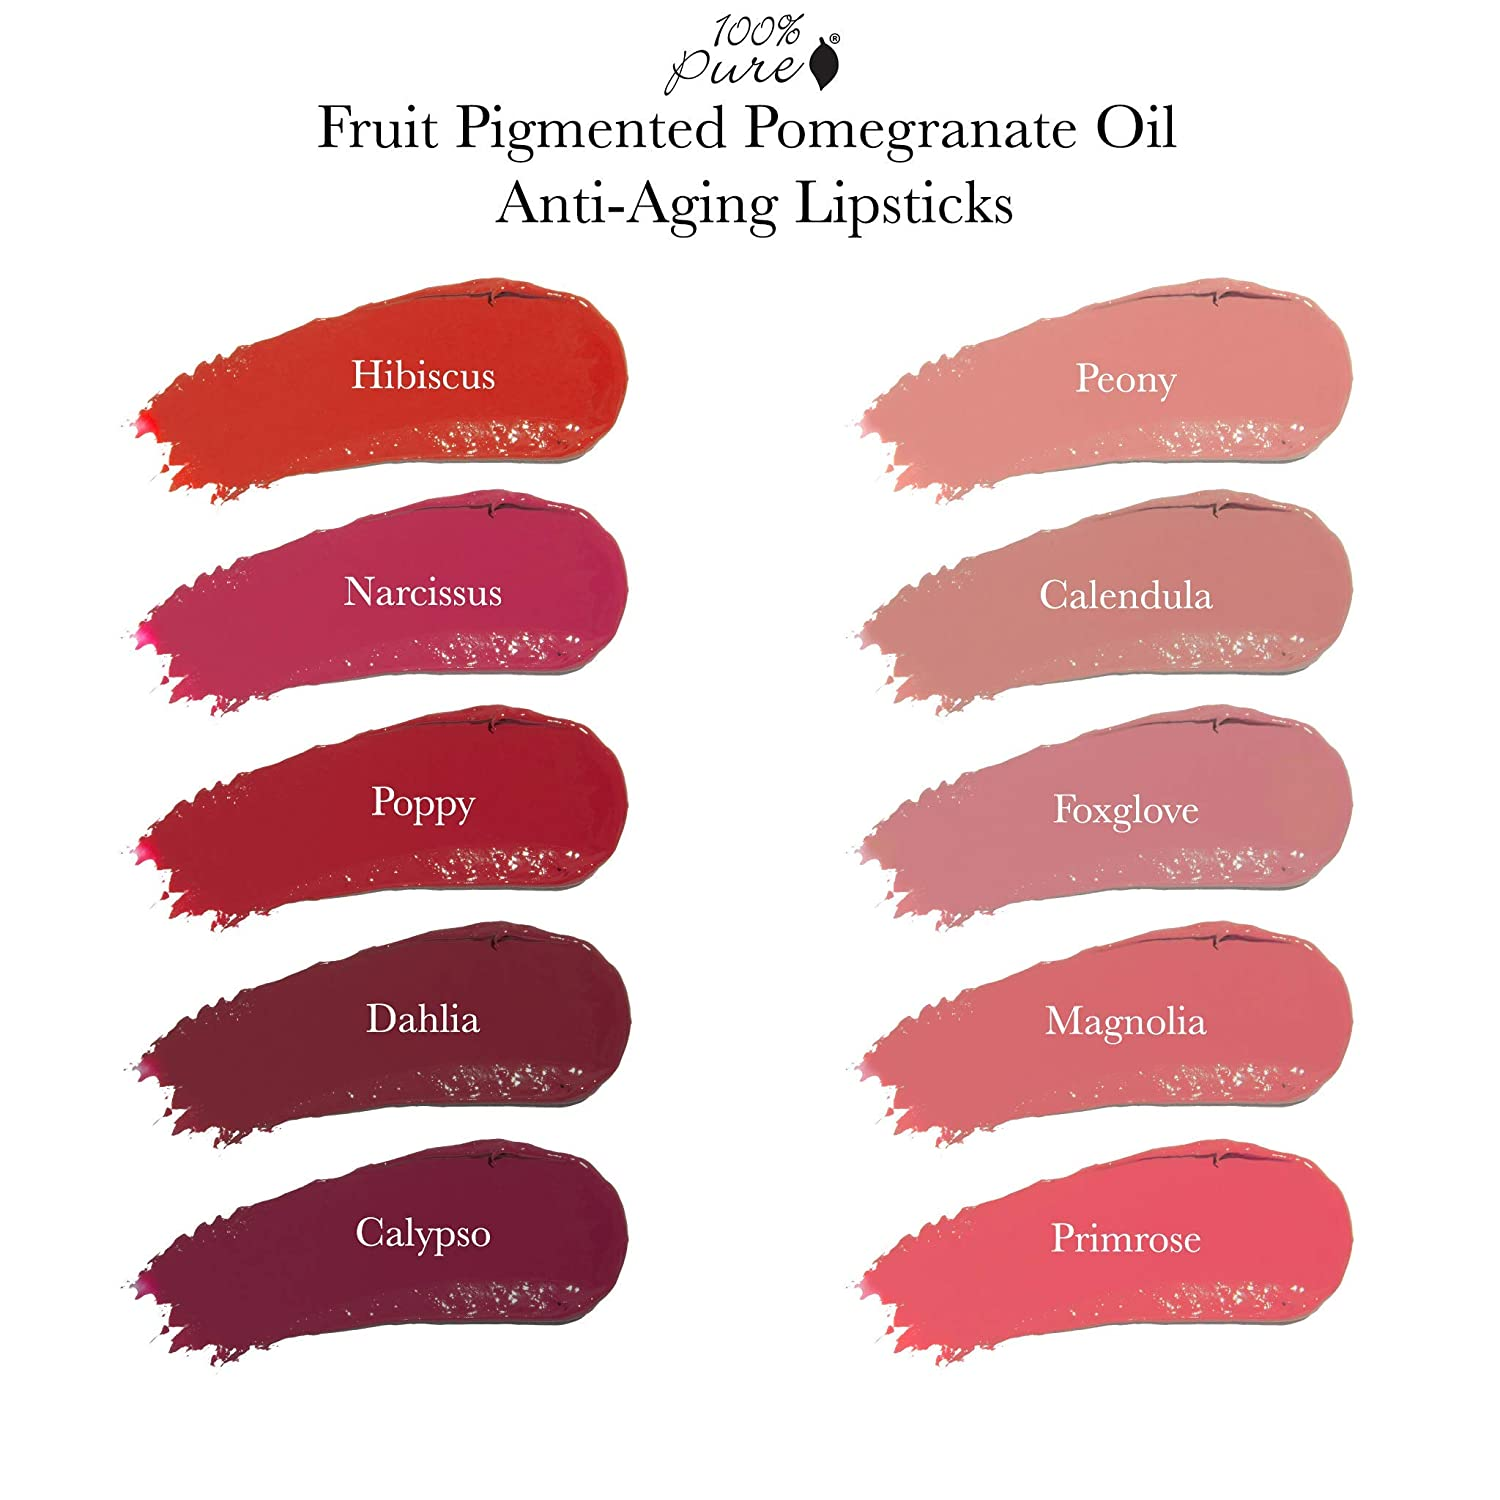 100% Pure Pomegranate Oil Anti Aging Lipstick, Calypso, 0 15 Ounce